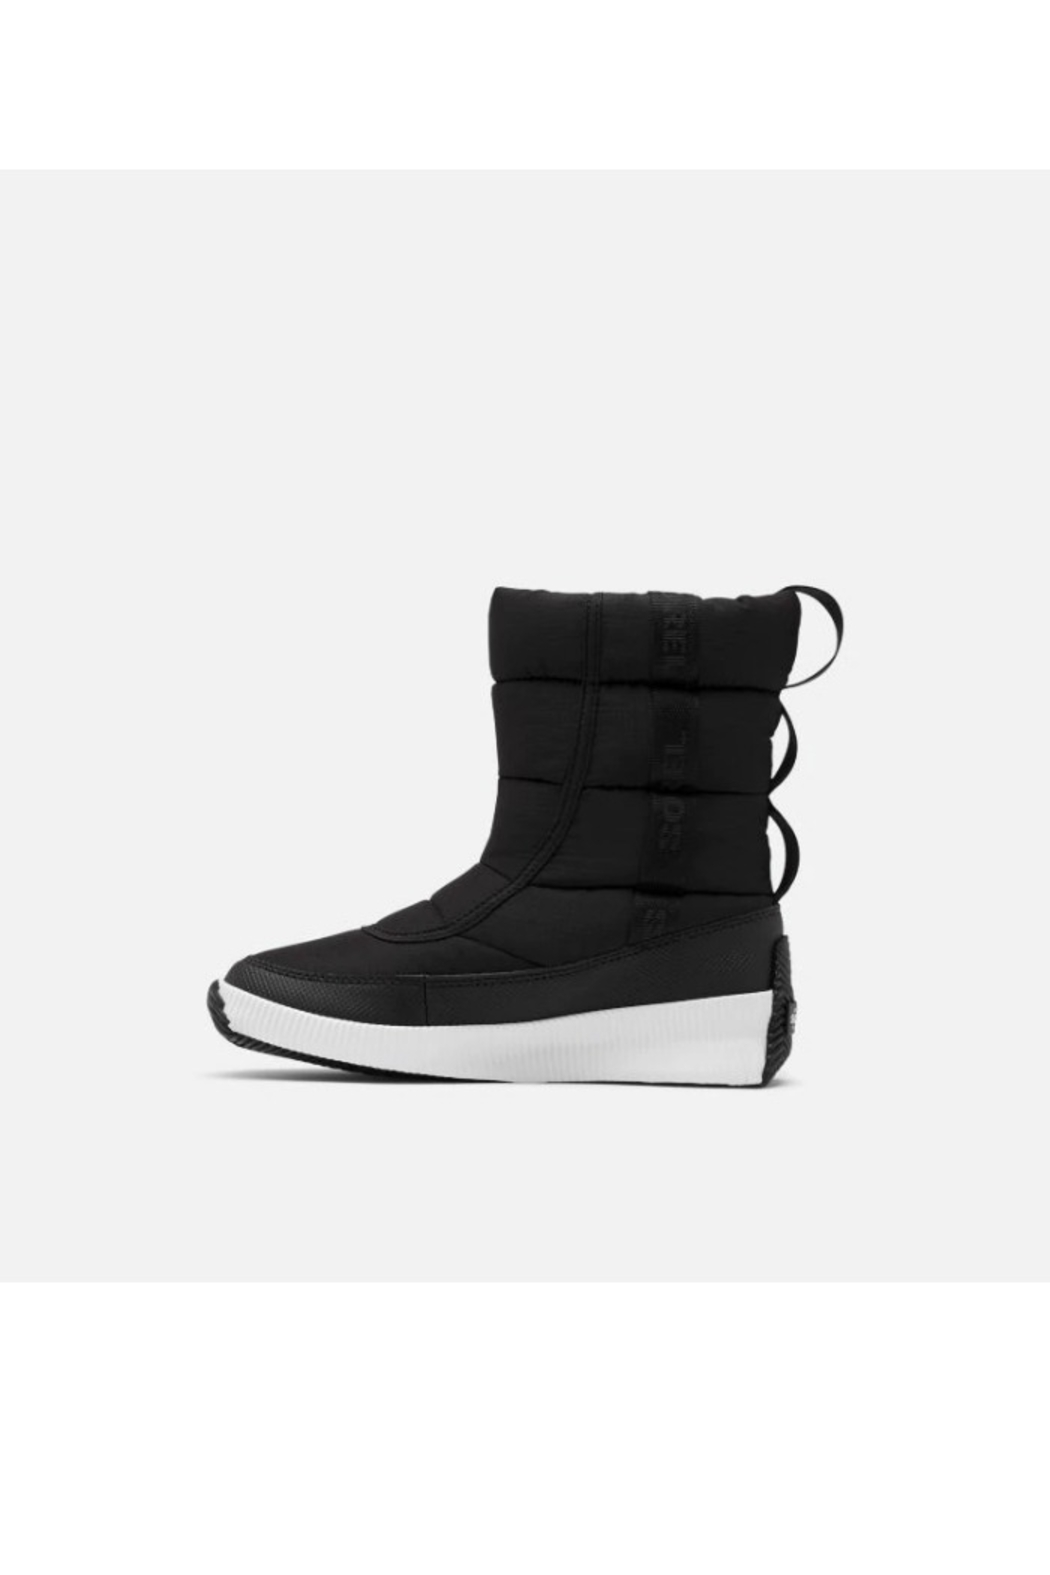 Sorel Women's Out N About Puffy Mid Boot - Back Cropped Image